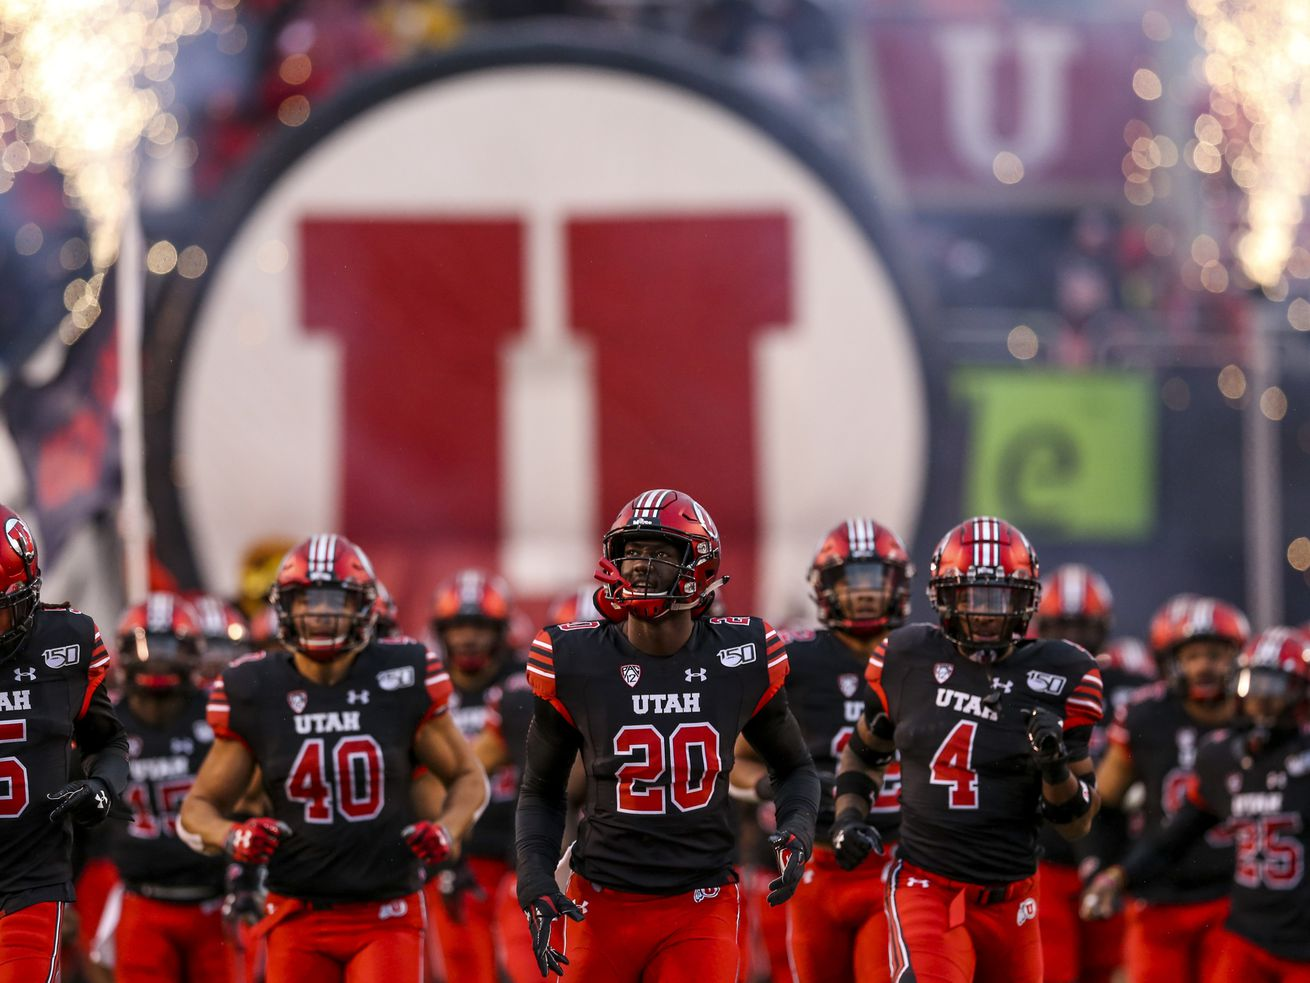 Reports: Pac-12 will play football this fall, with start in November